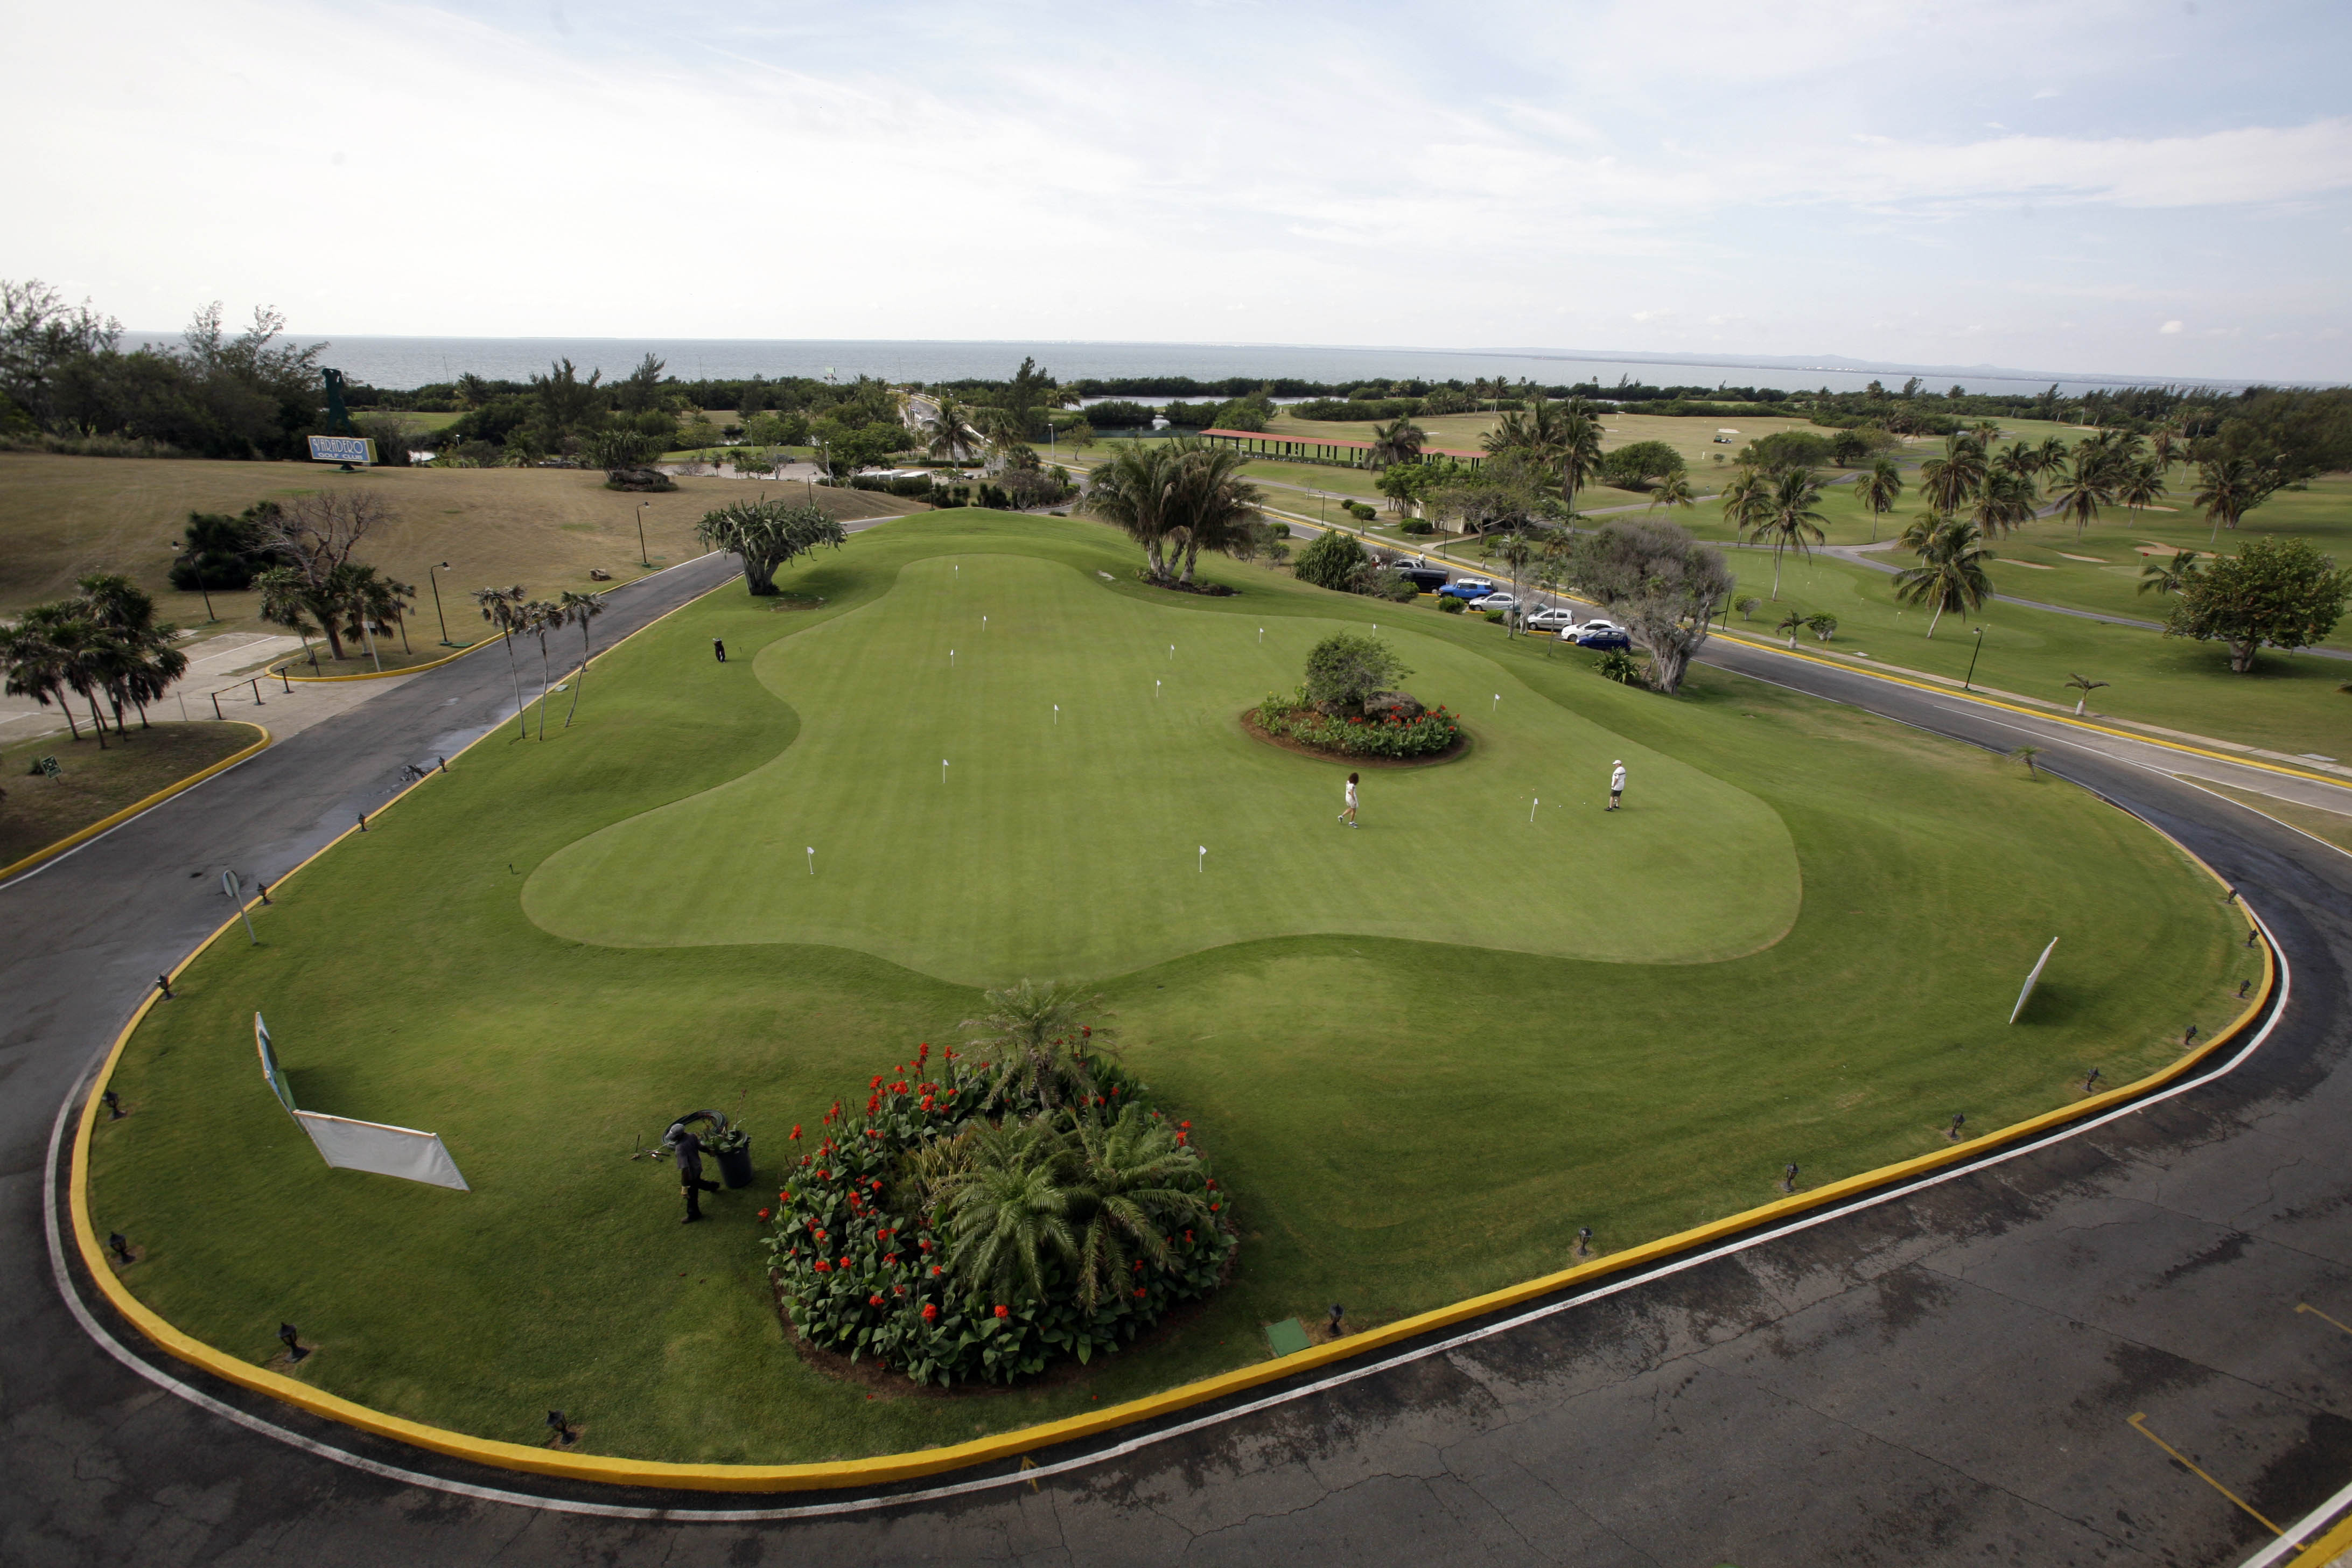 Golfers take to the practice area during the Montecristo Cup Golf Tournament in Varadero, Cuba.